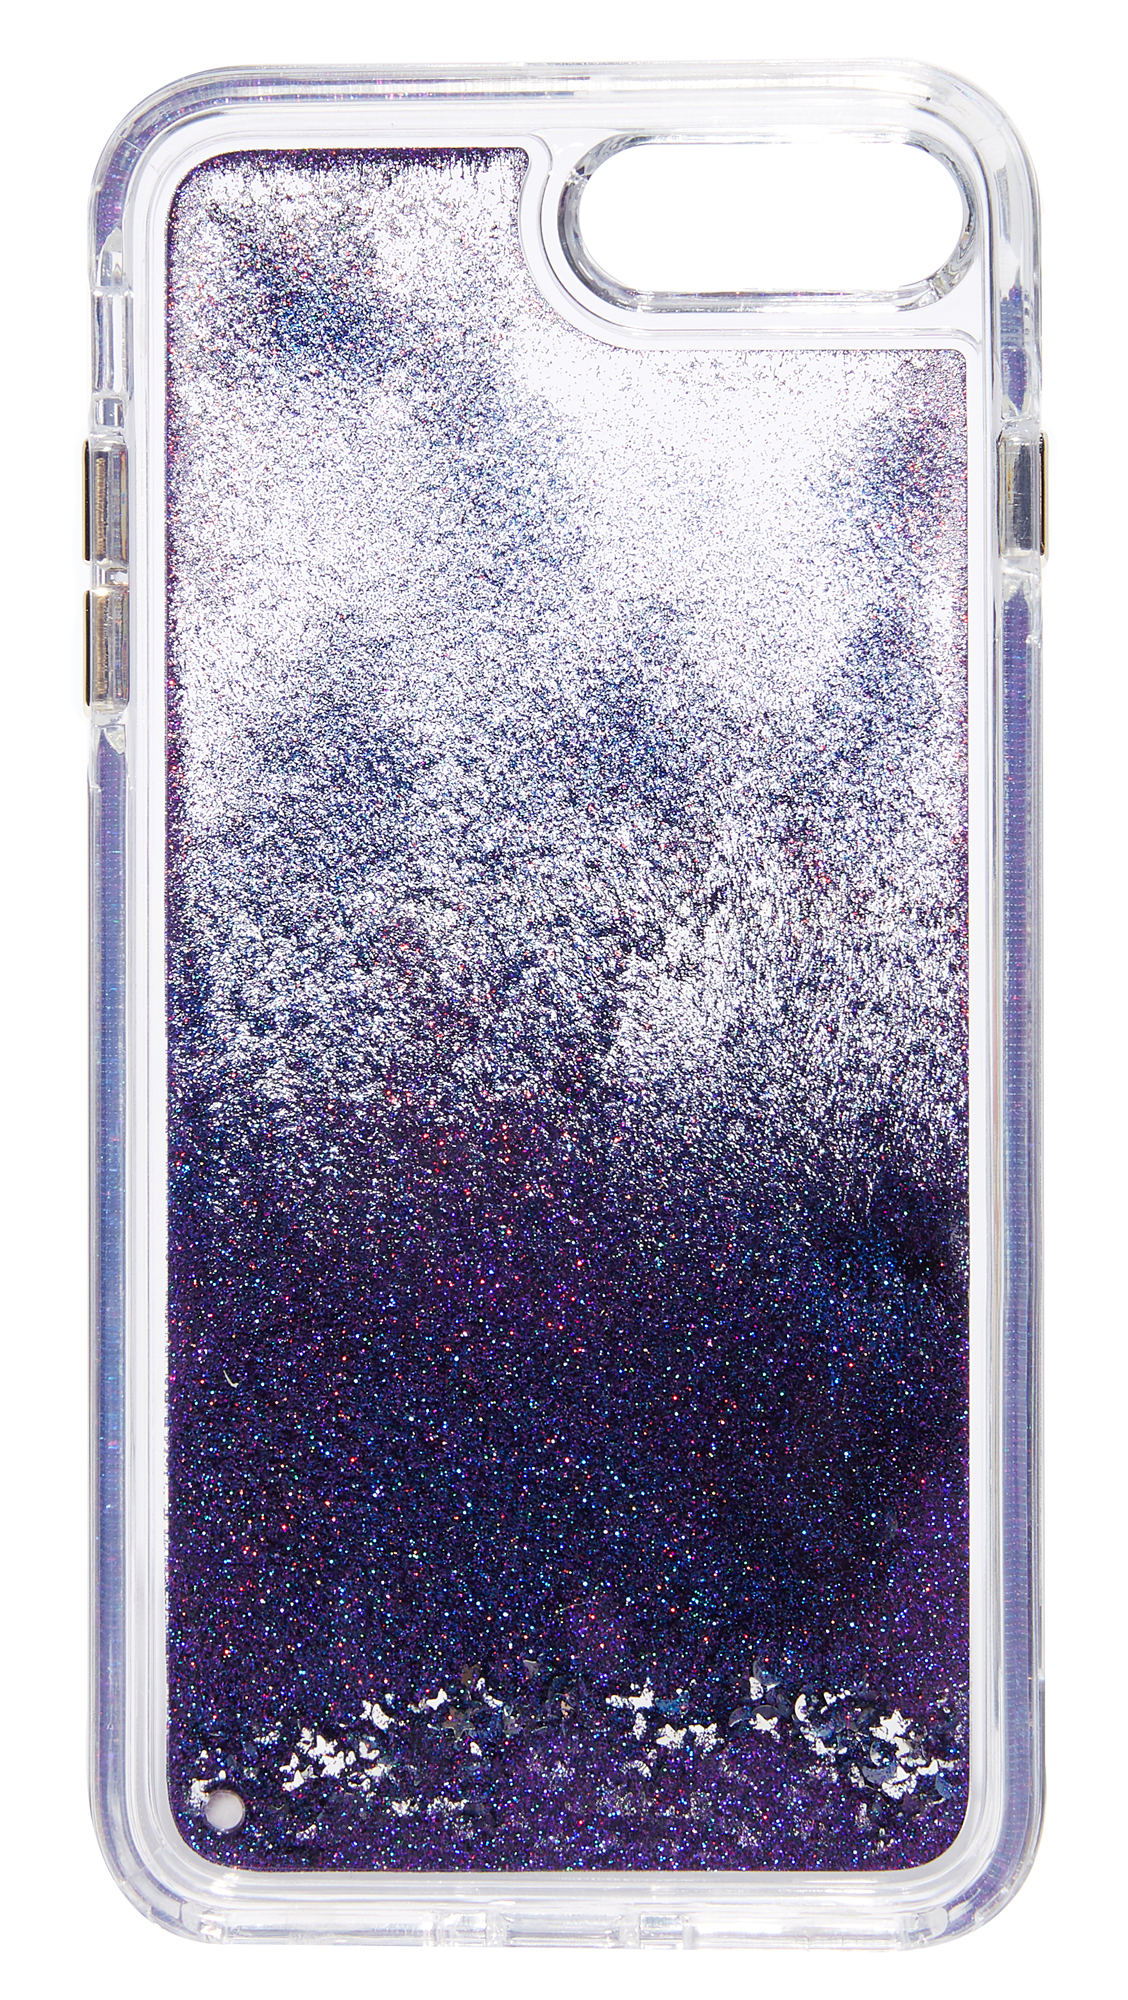 全て込み/Galaxy Glitterfall iPhone 7 Plus Case/国内発